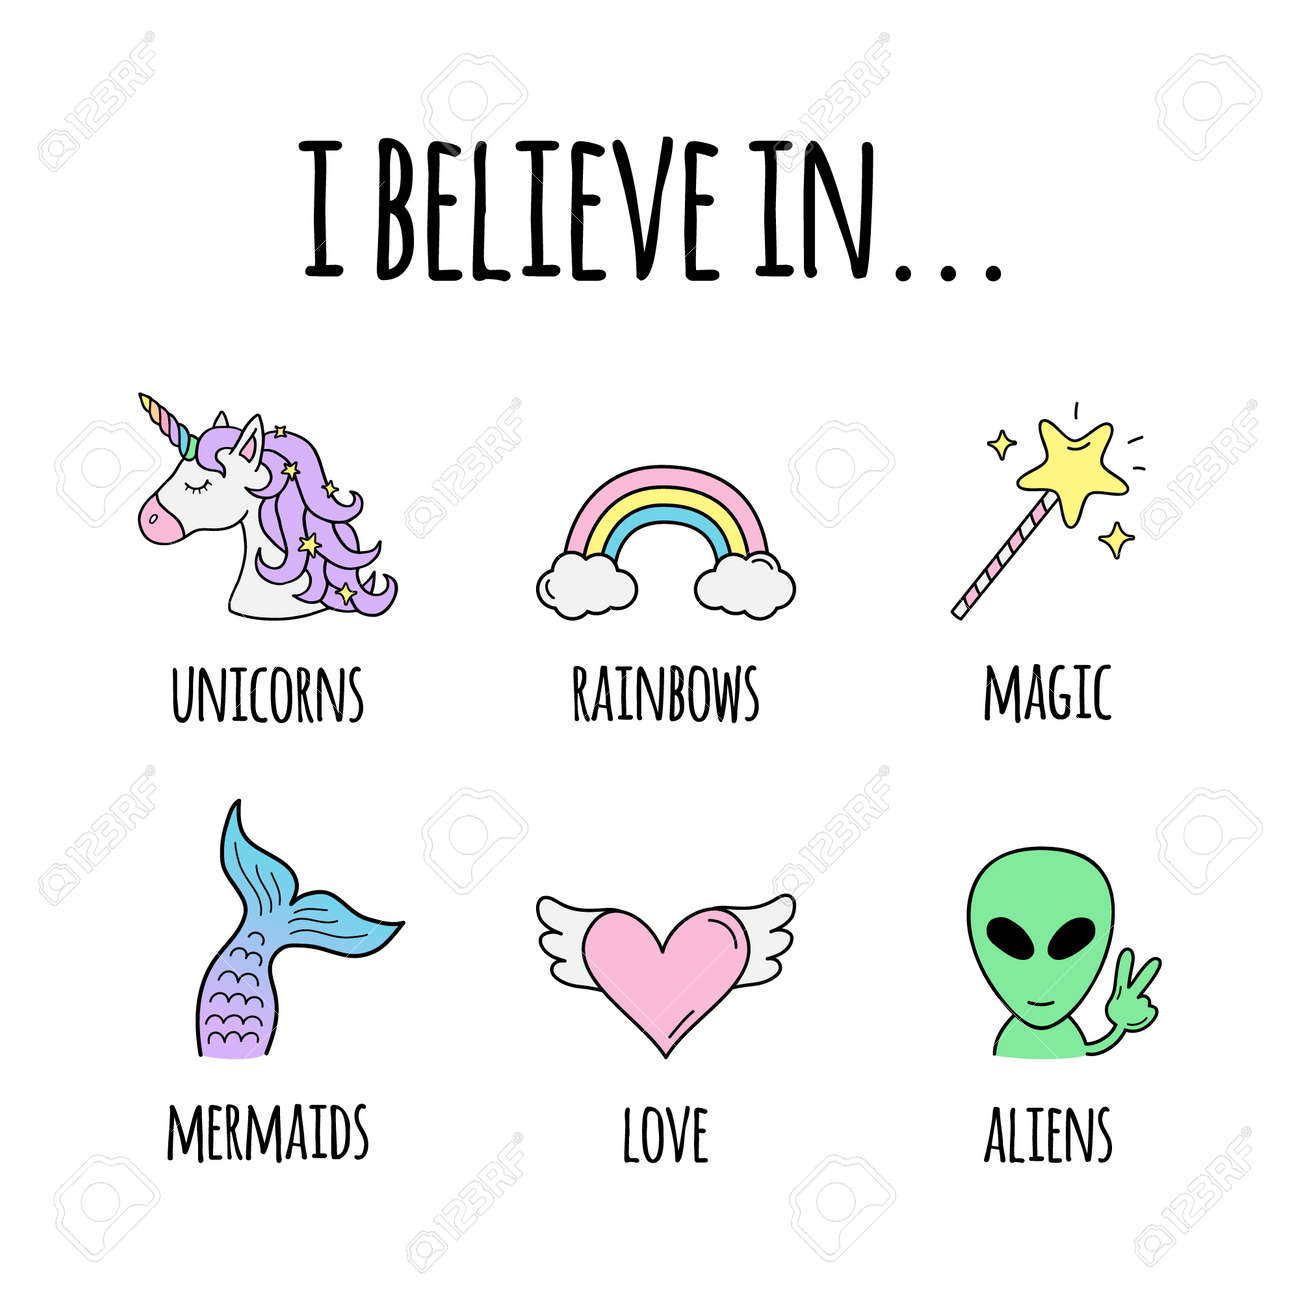 I believe in ... vector illustration design. I believe in unicorns, rainbows, magic, mermaids, love and aliens. Cute hand drawn trendy positive creatures and abstract objects. Isolated. - 158425663